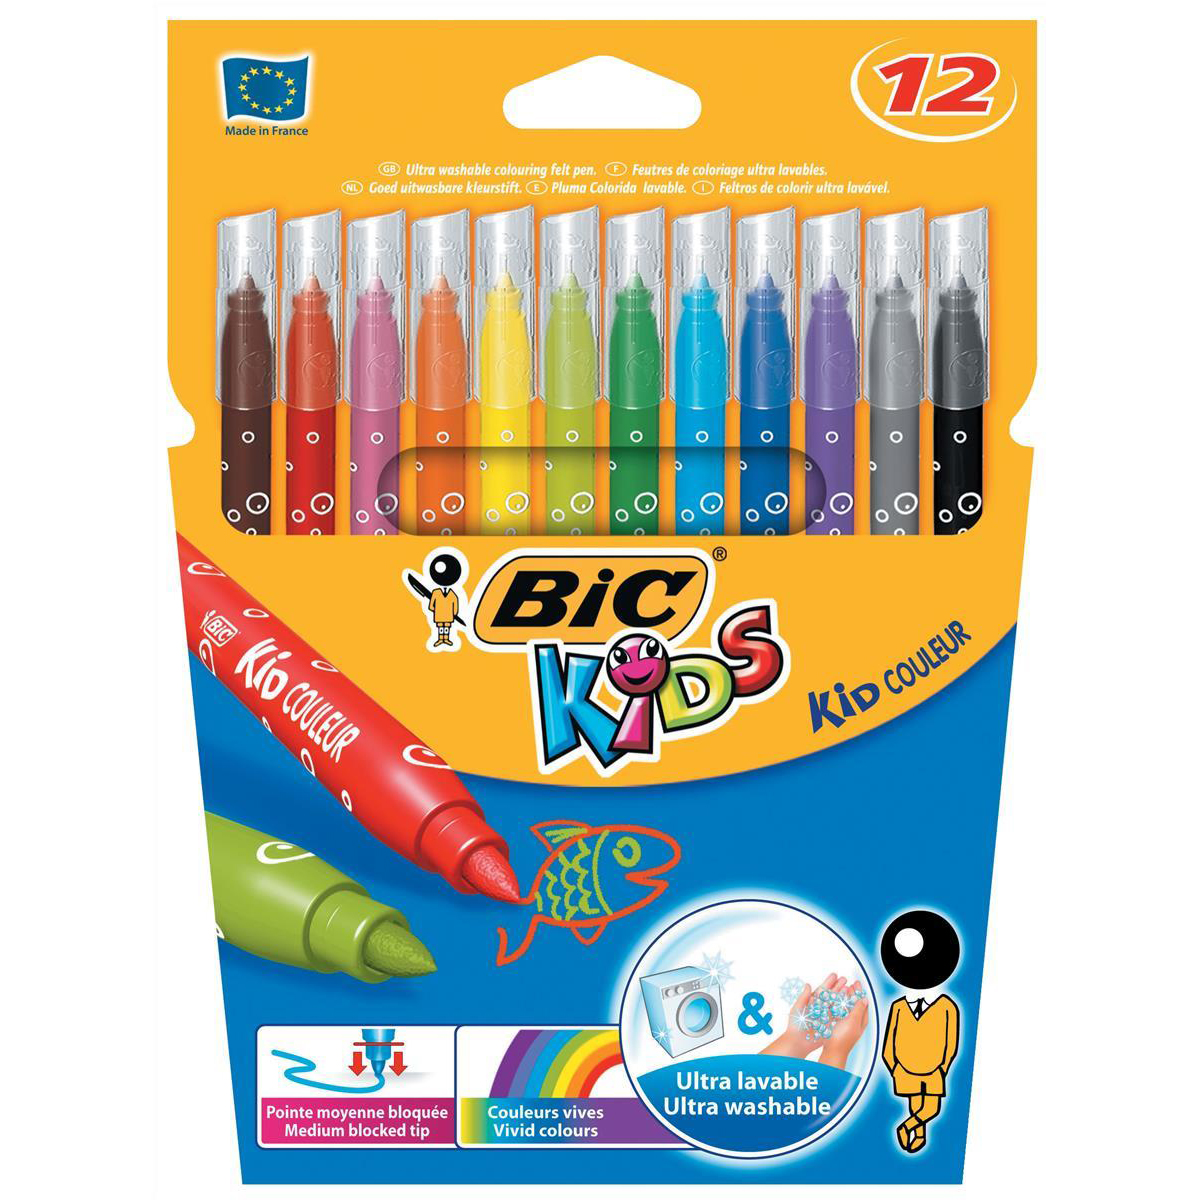 Colouring Pens Bic Kids Couleur Felt Tip Pens Washable Water-based Ink Medium Tip Wallet Asstd Cols Ref 920293 Pack 12